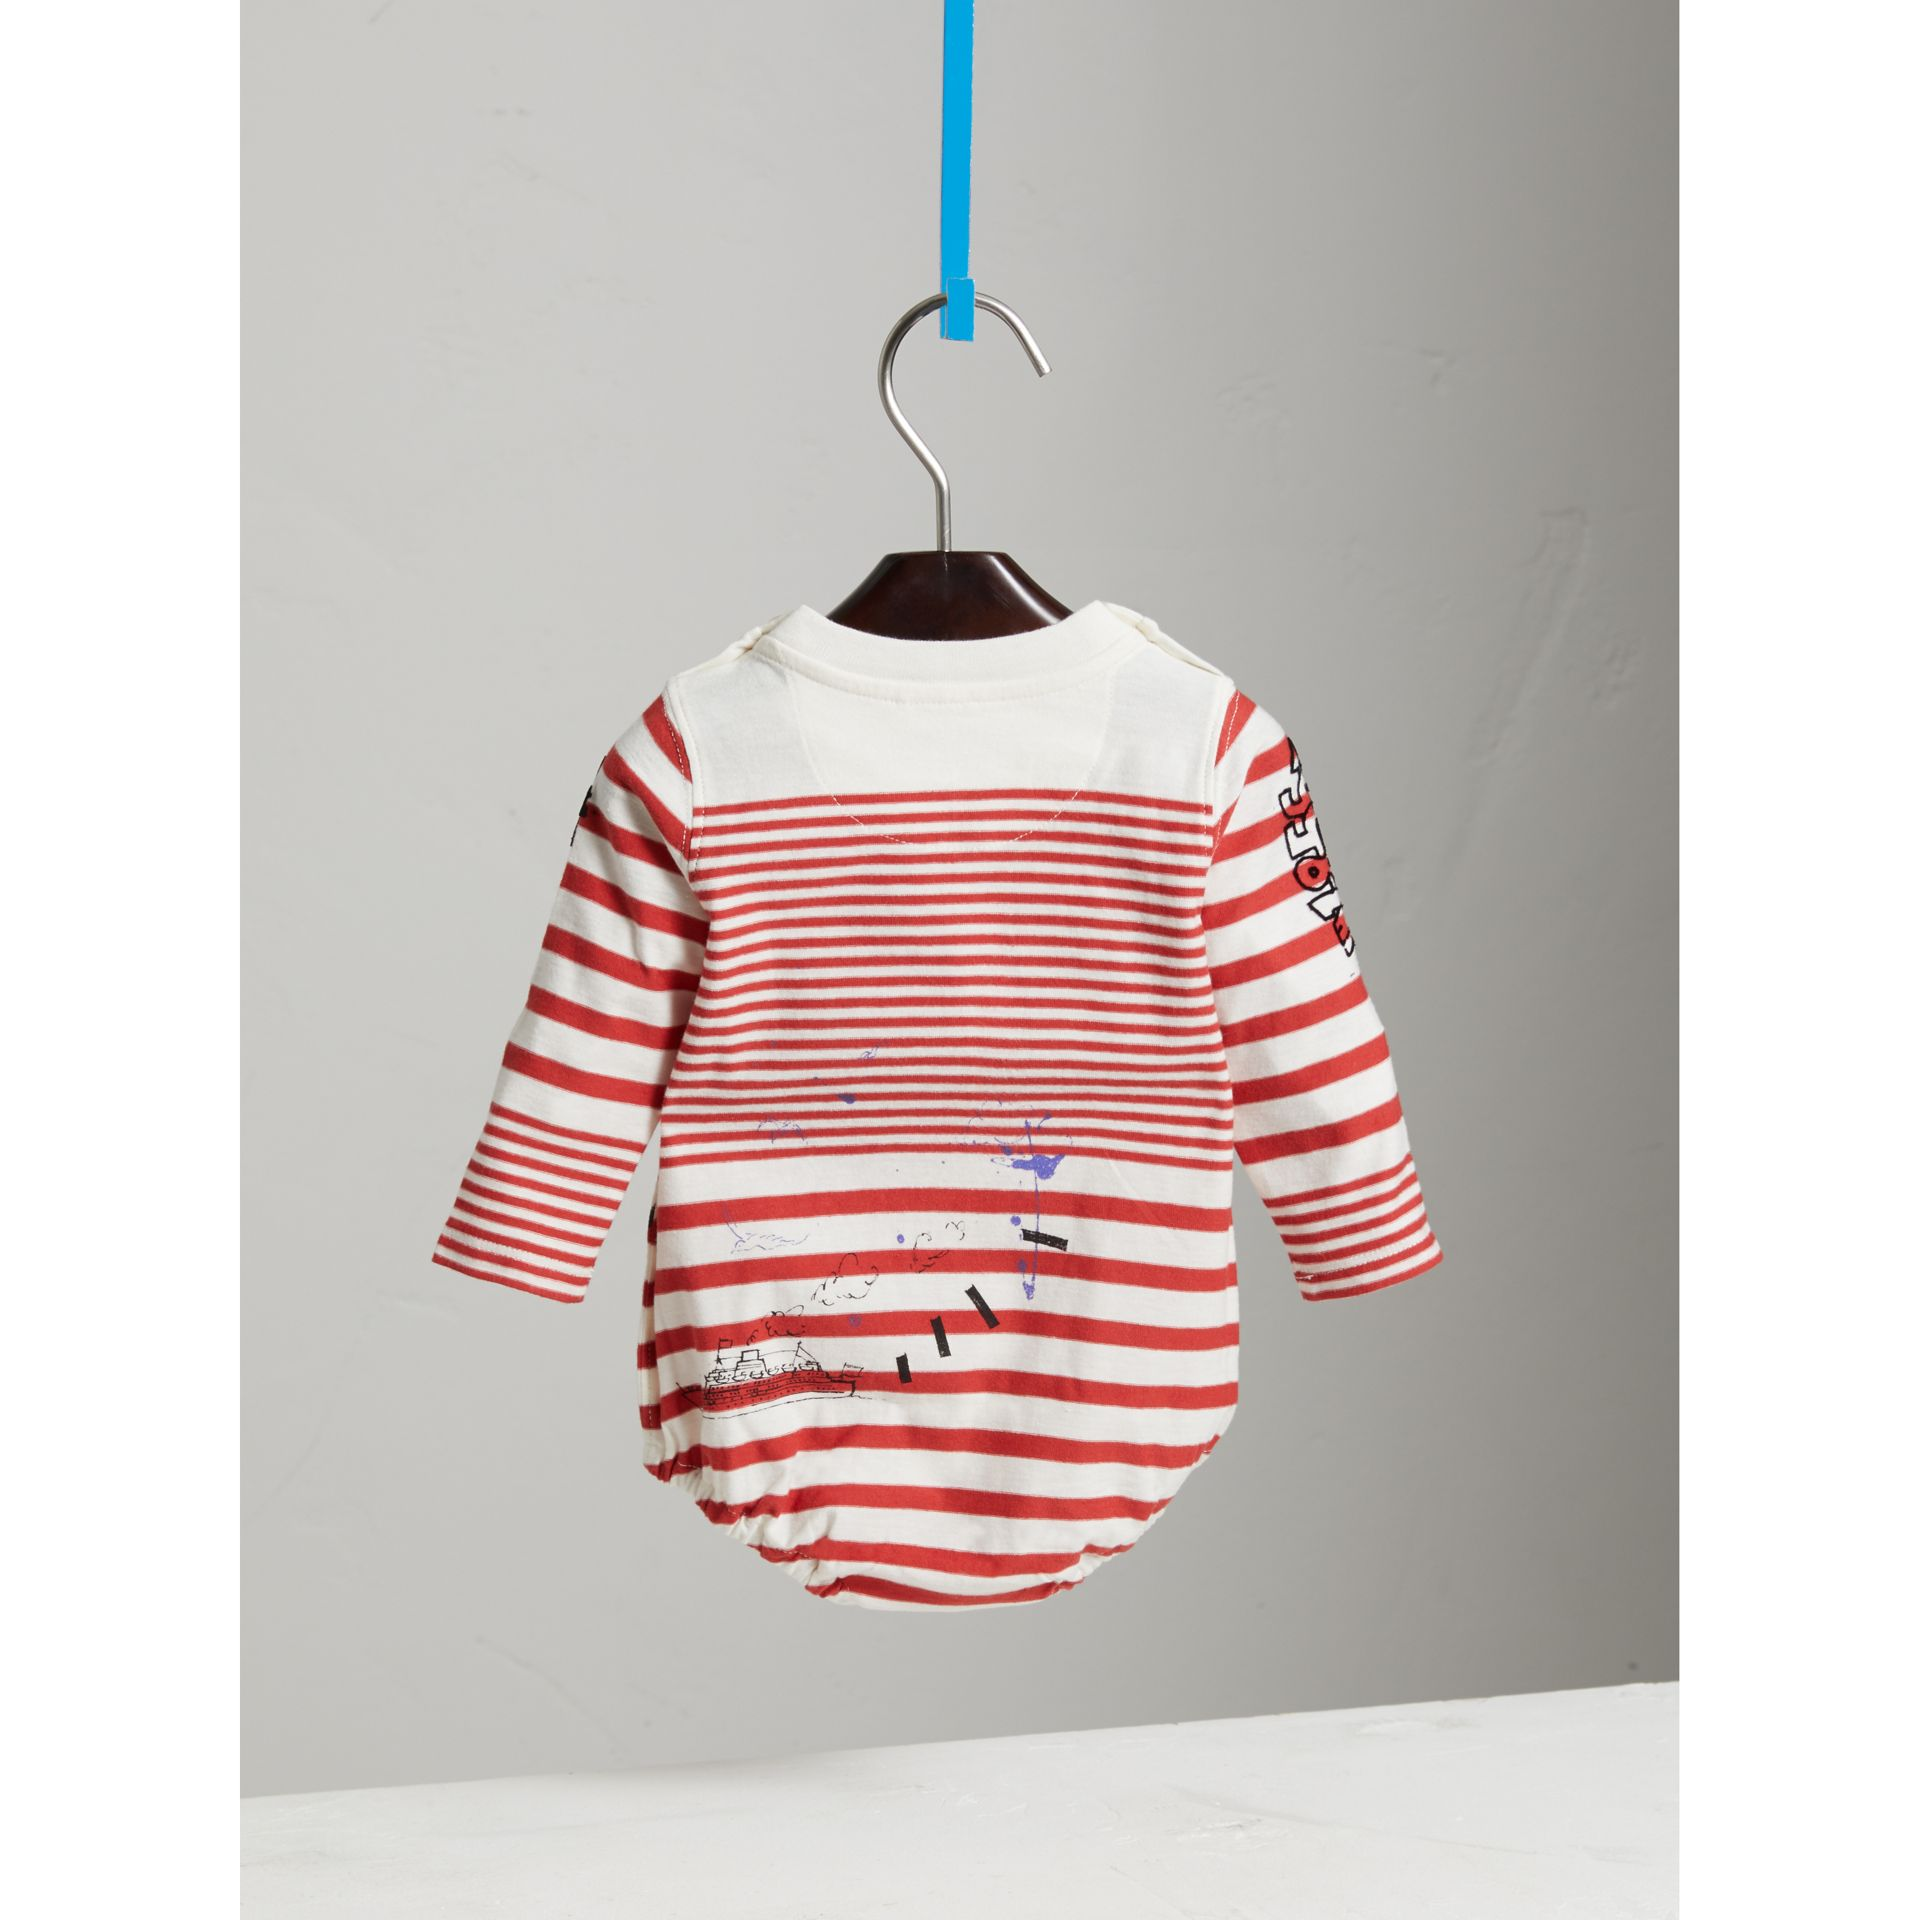 SW1 Print Striped Cotton Jersey Bodysuit in Bright Red/natural White | Burberry - gallery image 3